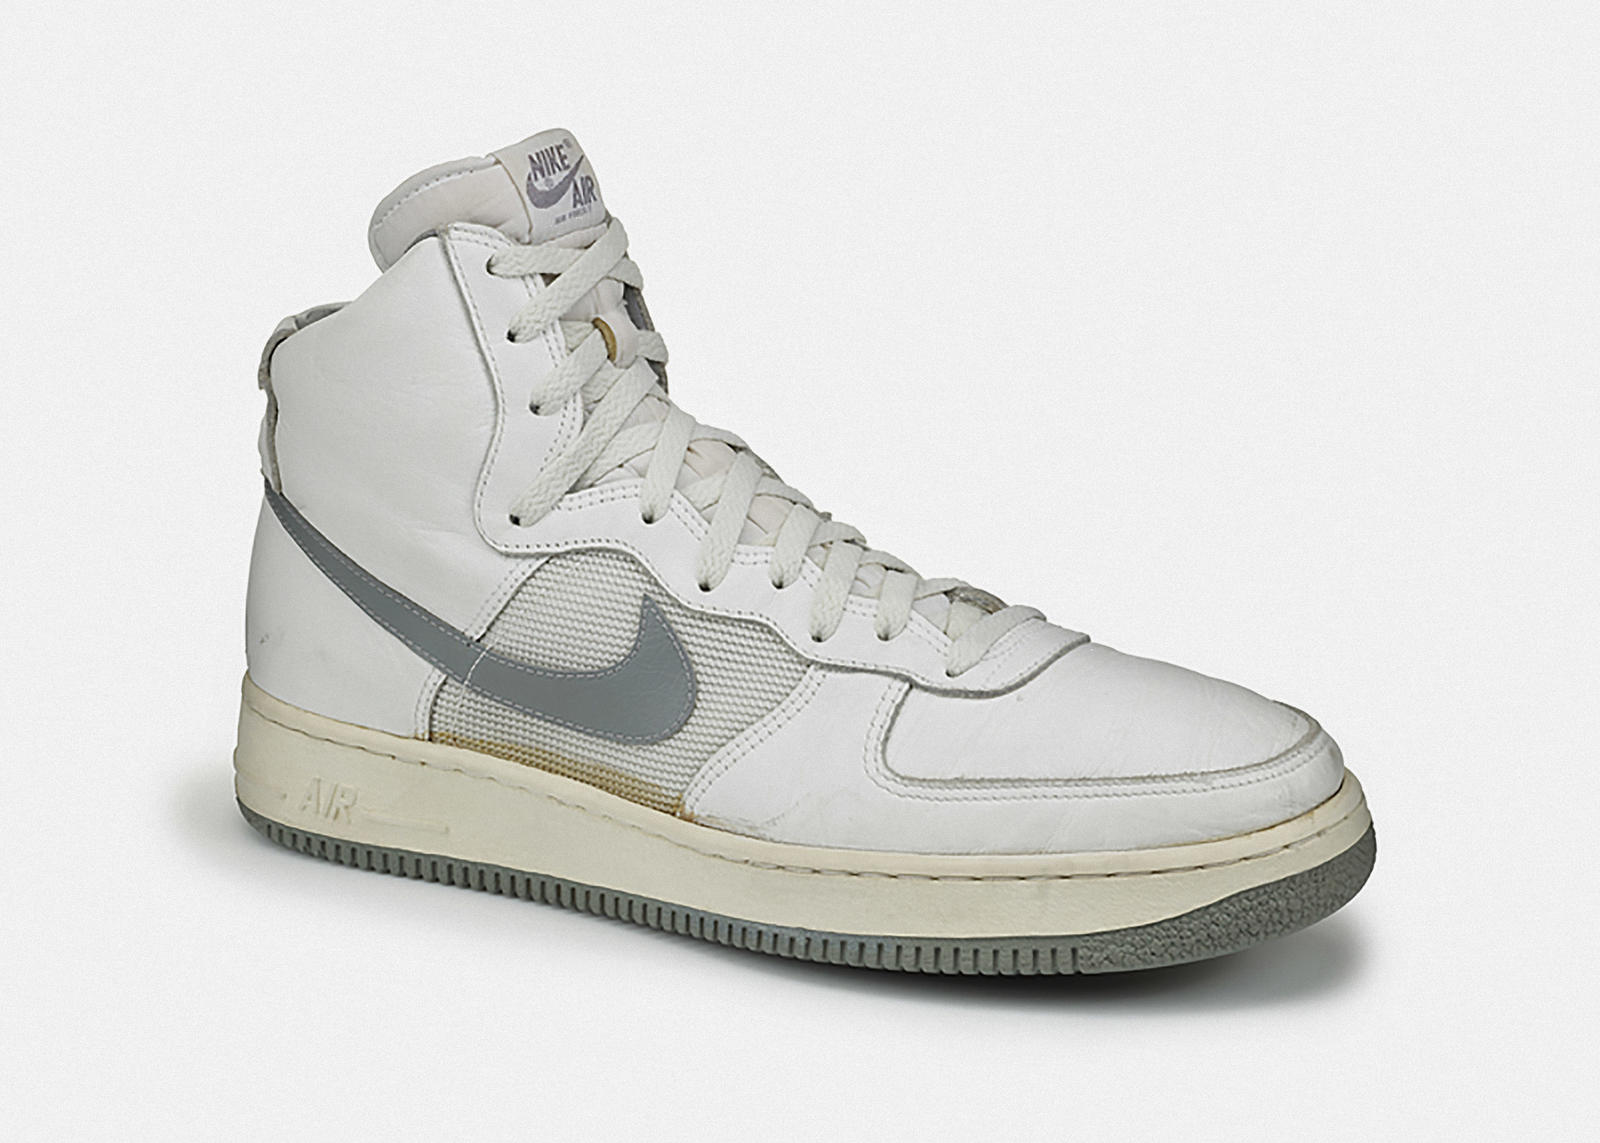 Designer Bruce Kilgore Dishes on Nike Air Force 1 - Nike News 83fb161e1